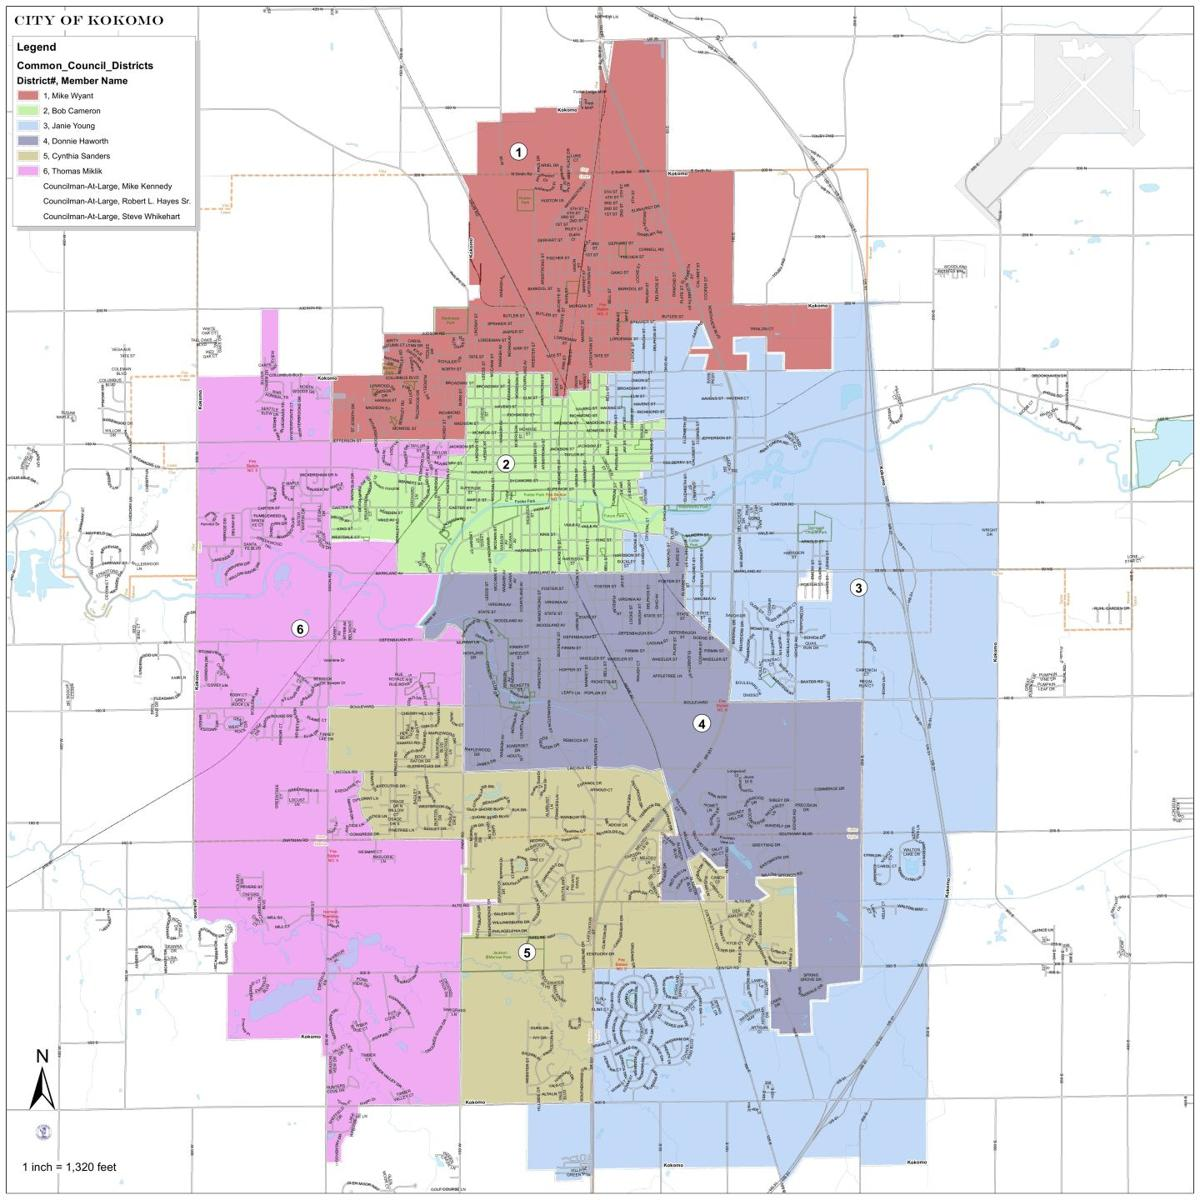 Common Council map